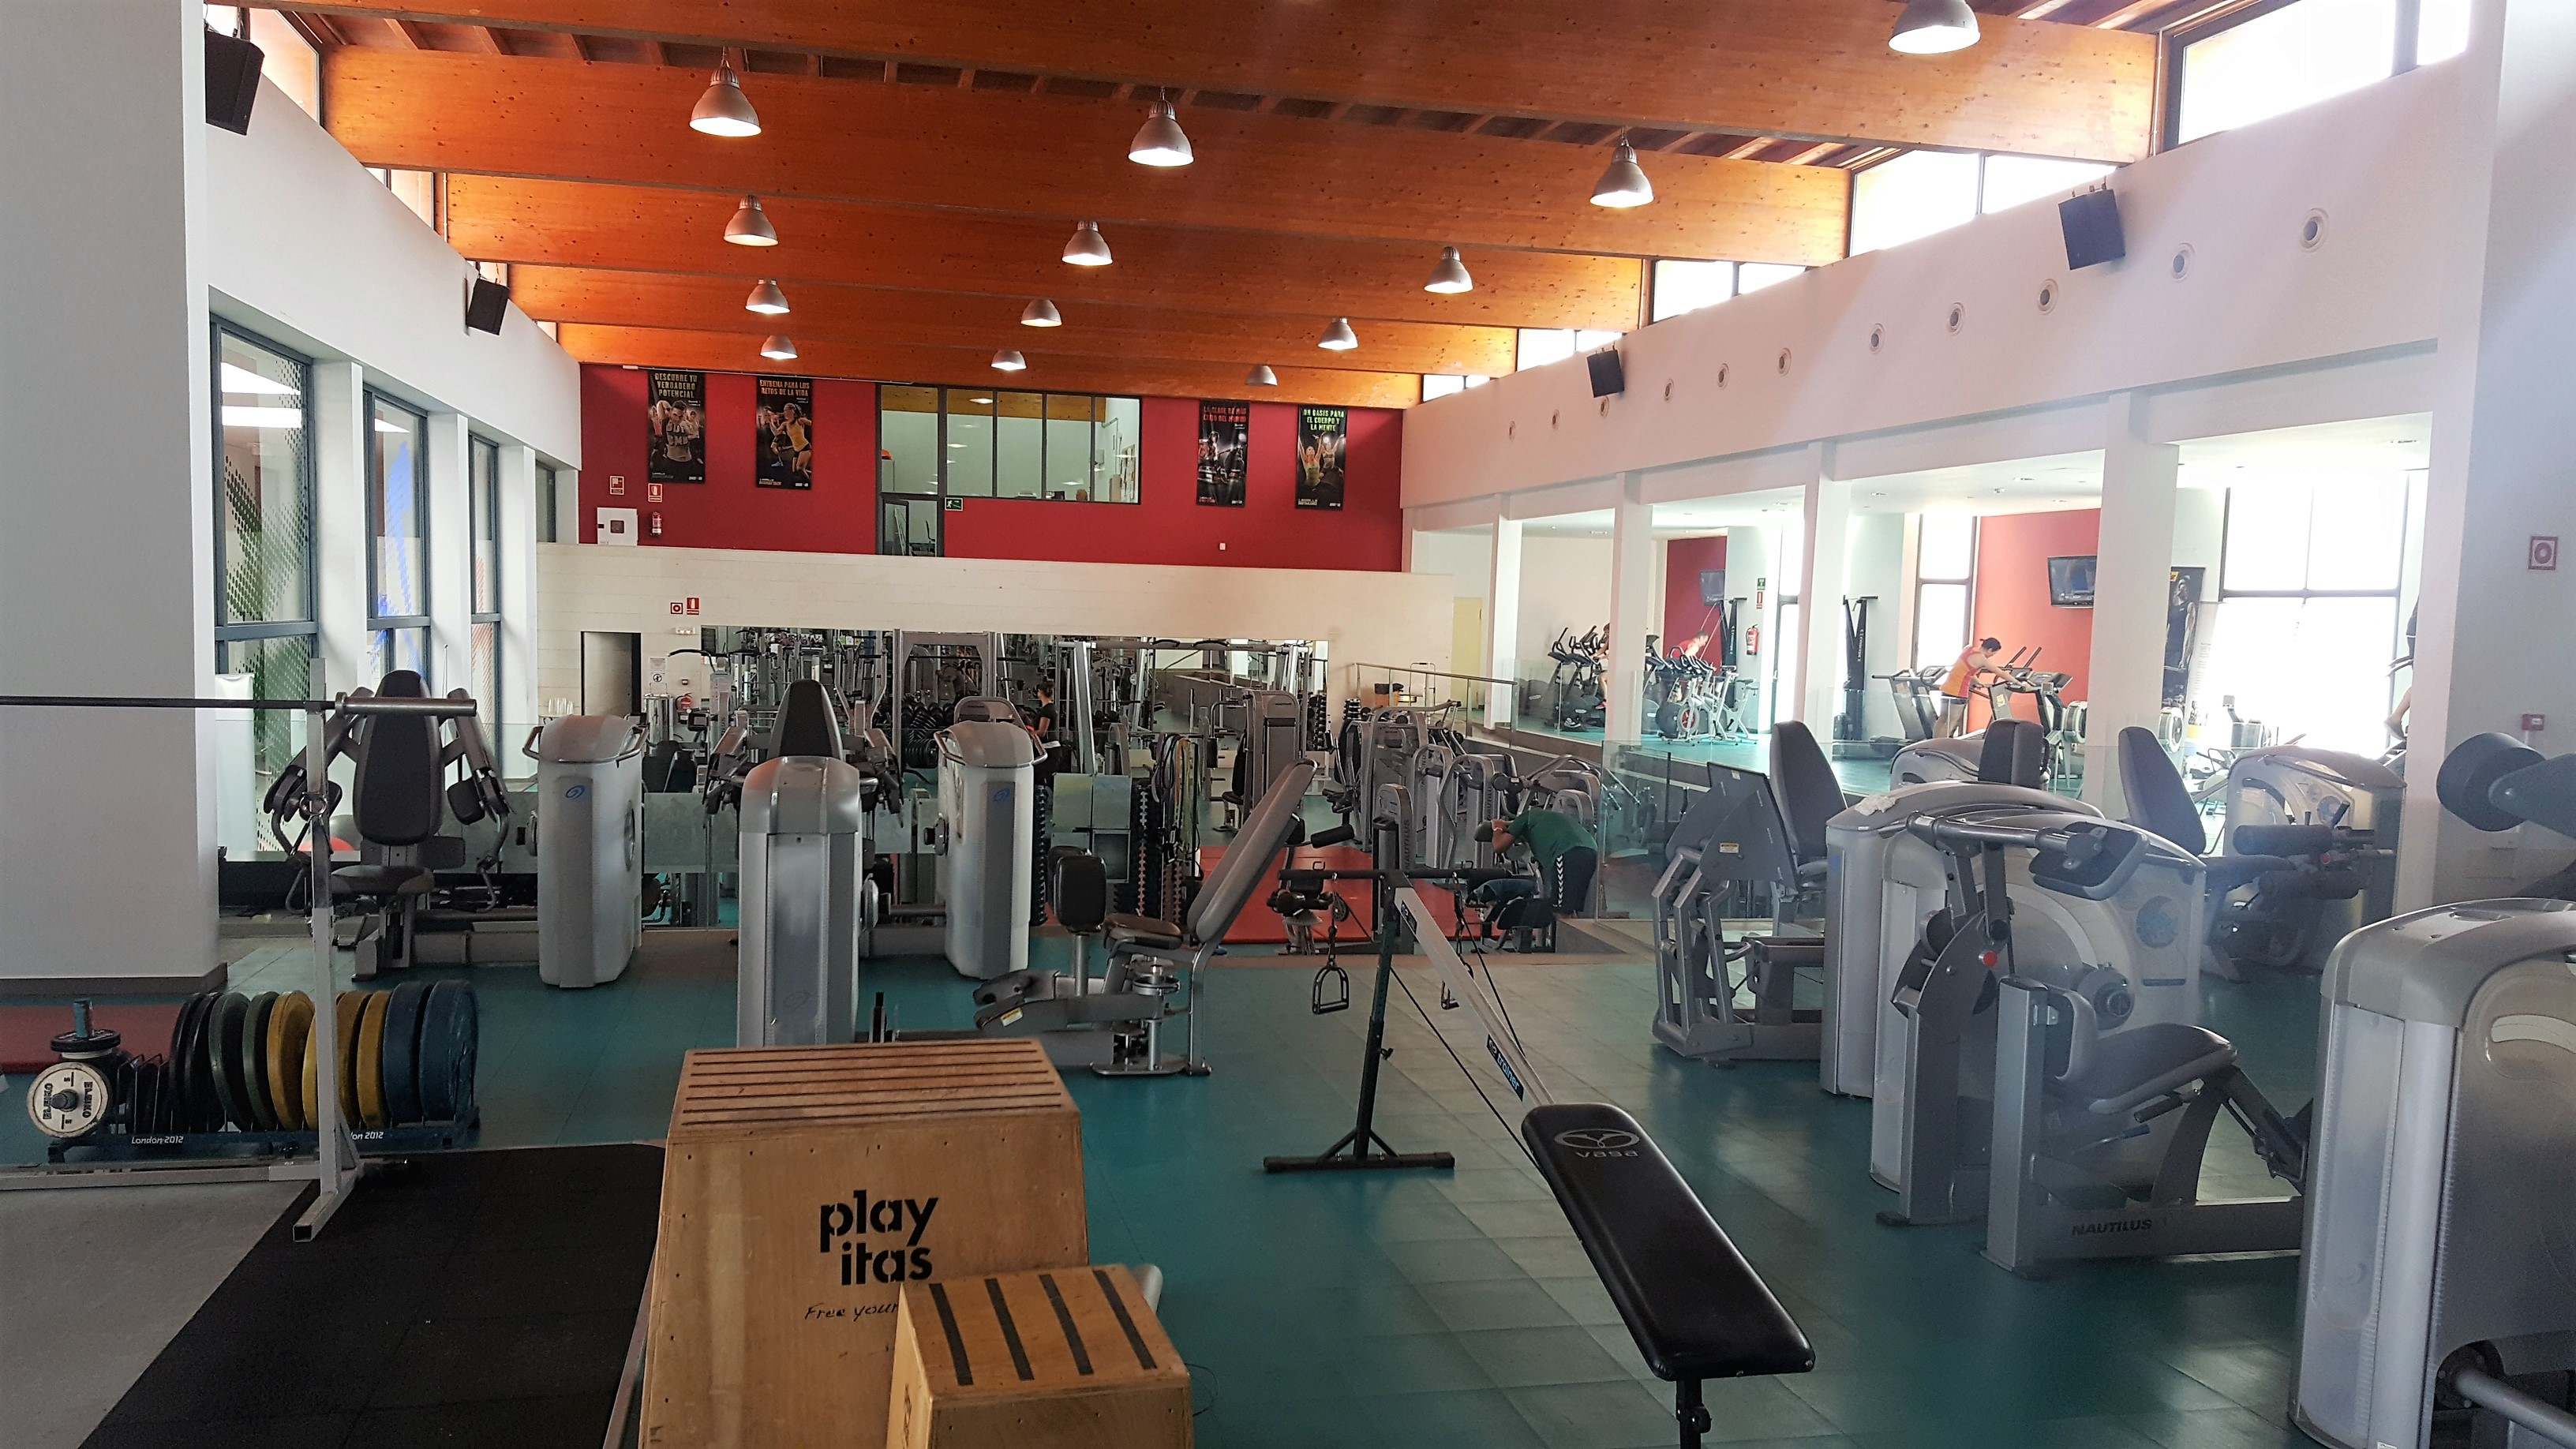 Playitas Resort Gym, Fuerteventura